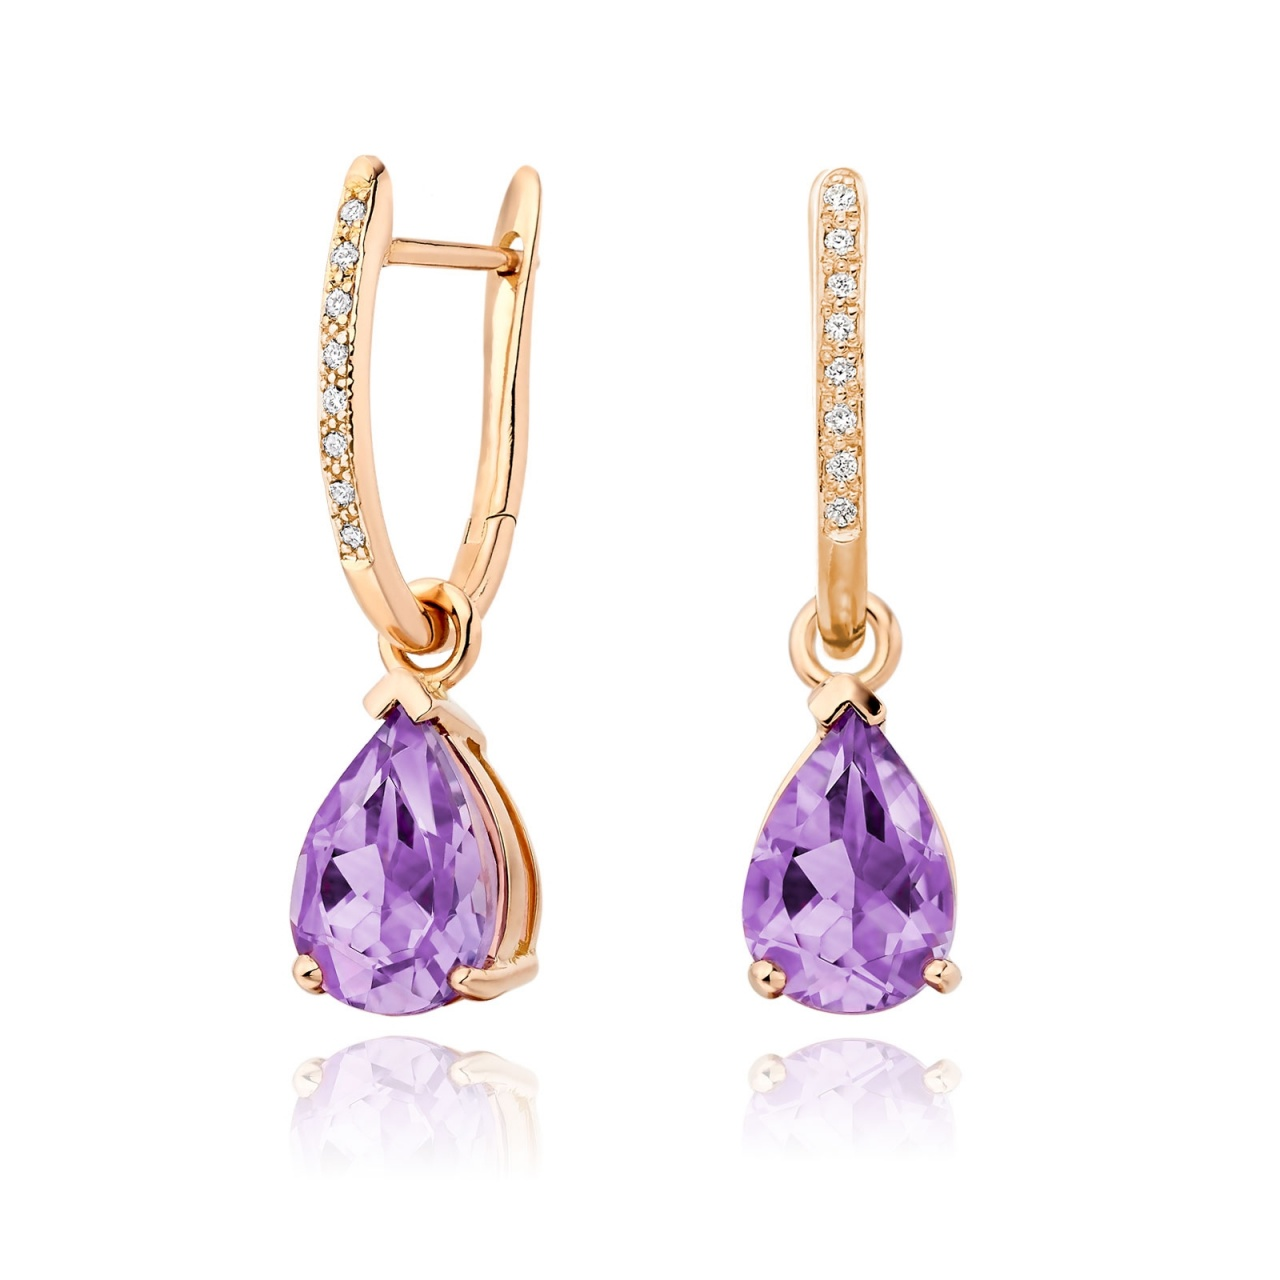 Classic Leverbacks with Mythologie Amethyst Drops in Rose Gold-EAAMRG1113-1